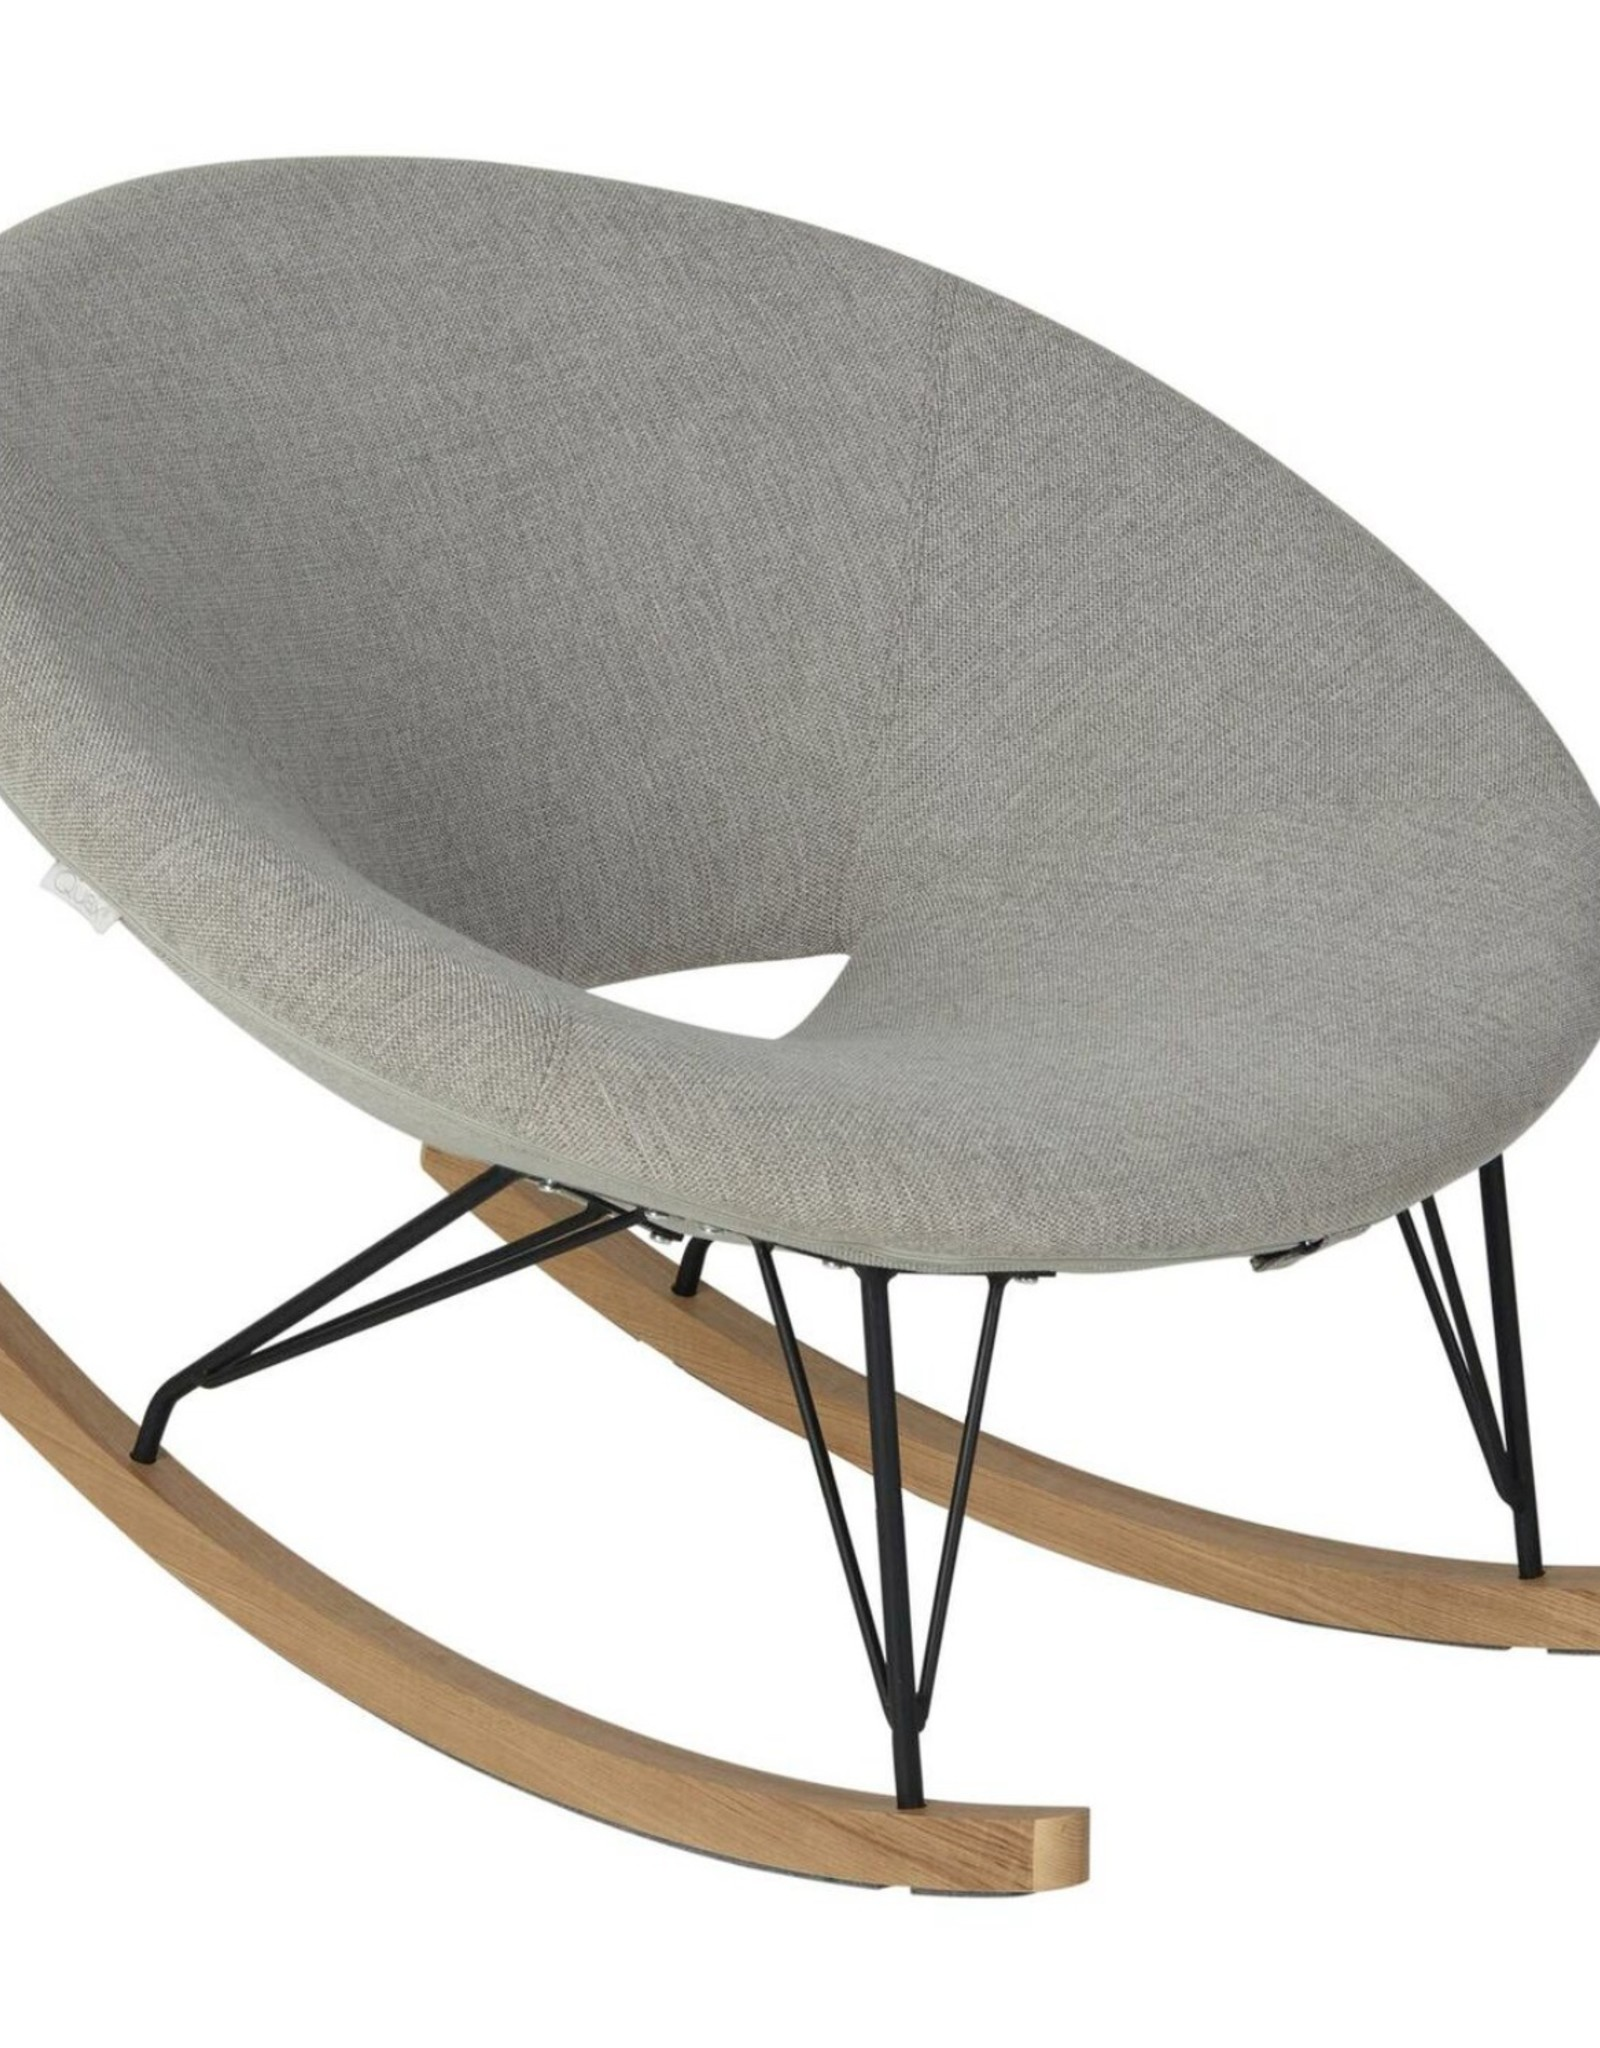 Quax Rocking Adult O Chair De Luxe - Sand Grey